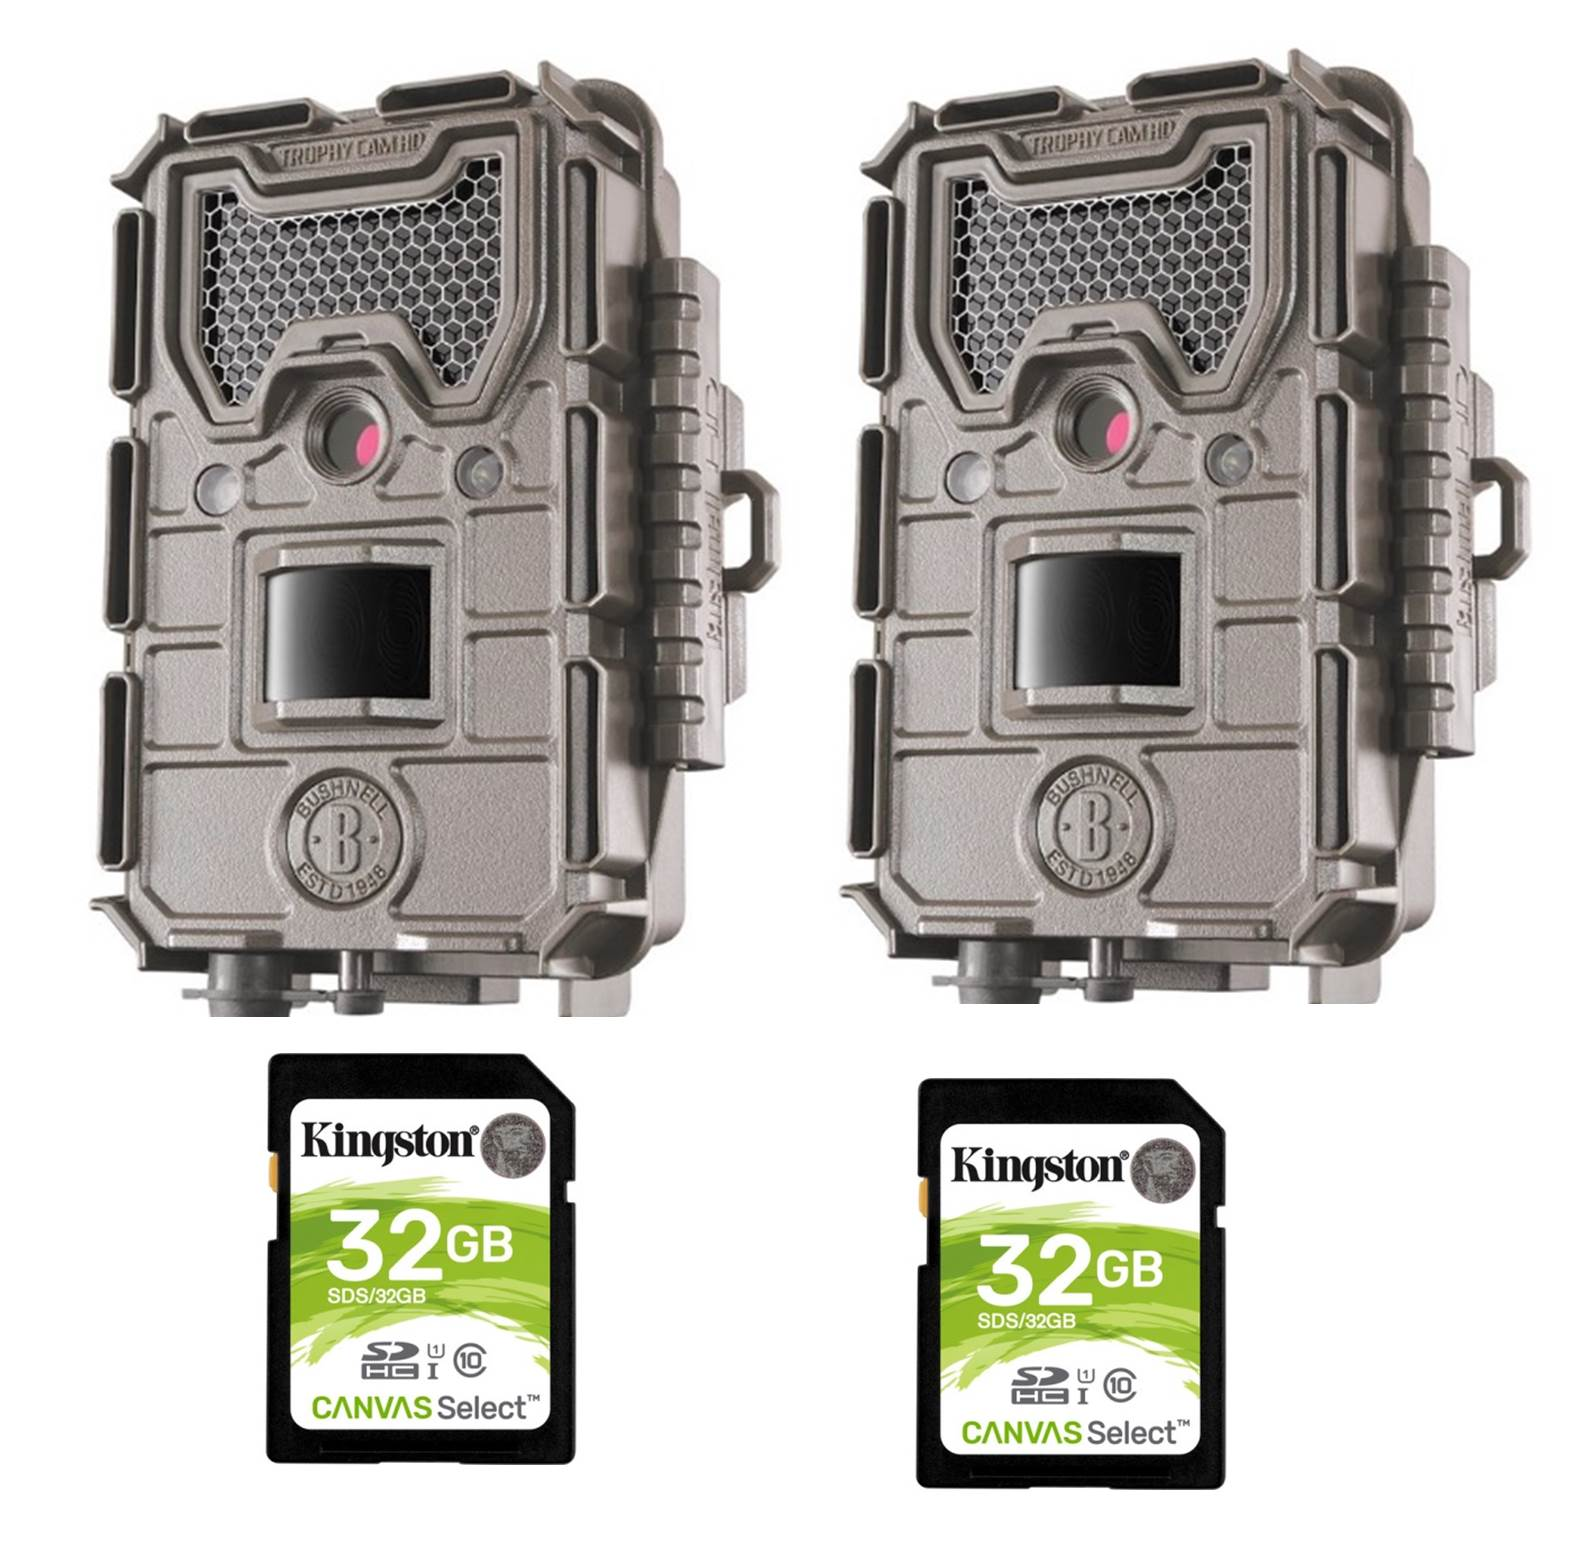 Bushnell Trail Camera Kit Essential 16MP HD Cam Low Glow 2 PACK 2 Cameras + 2 SD CARDS